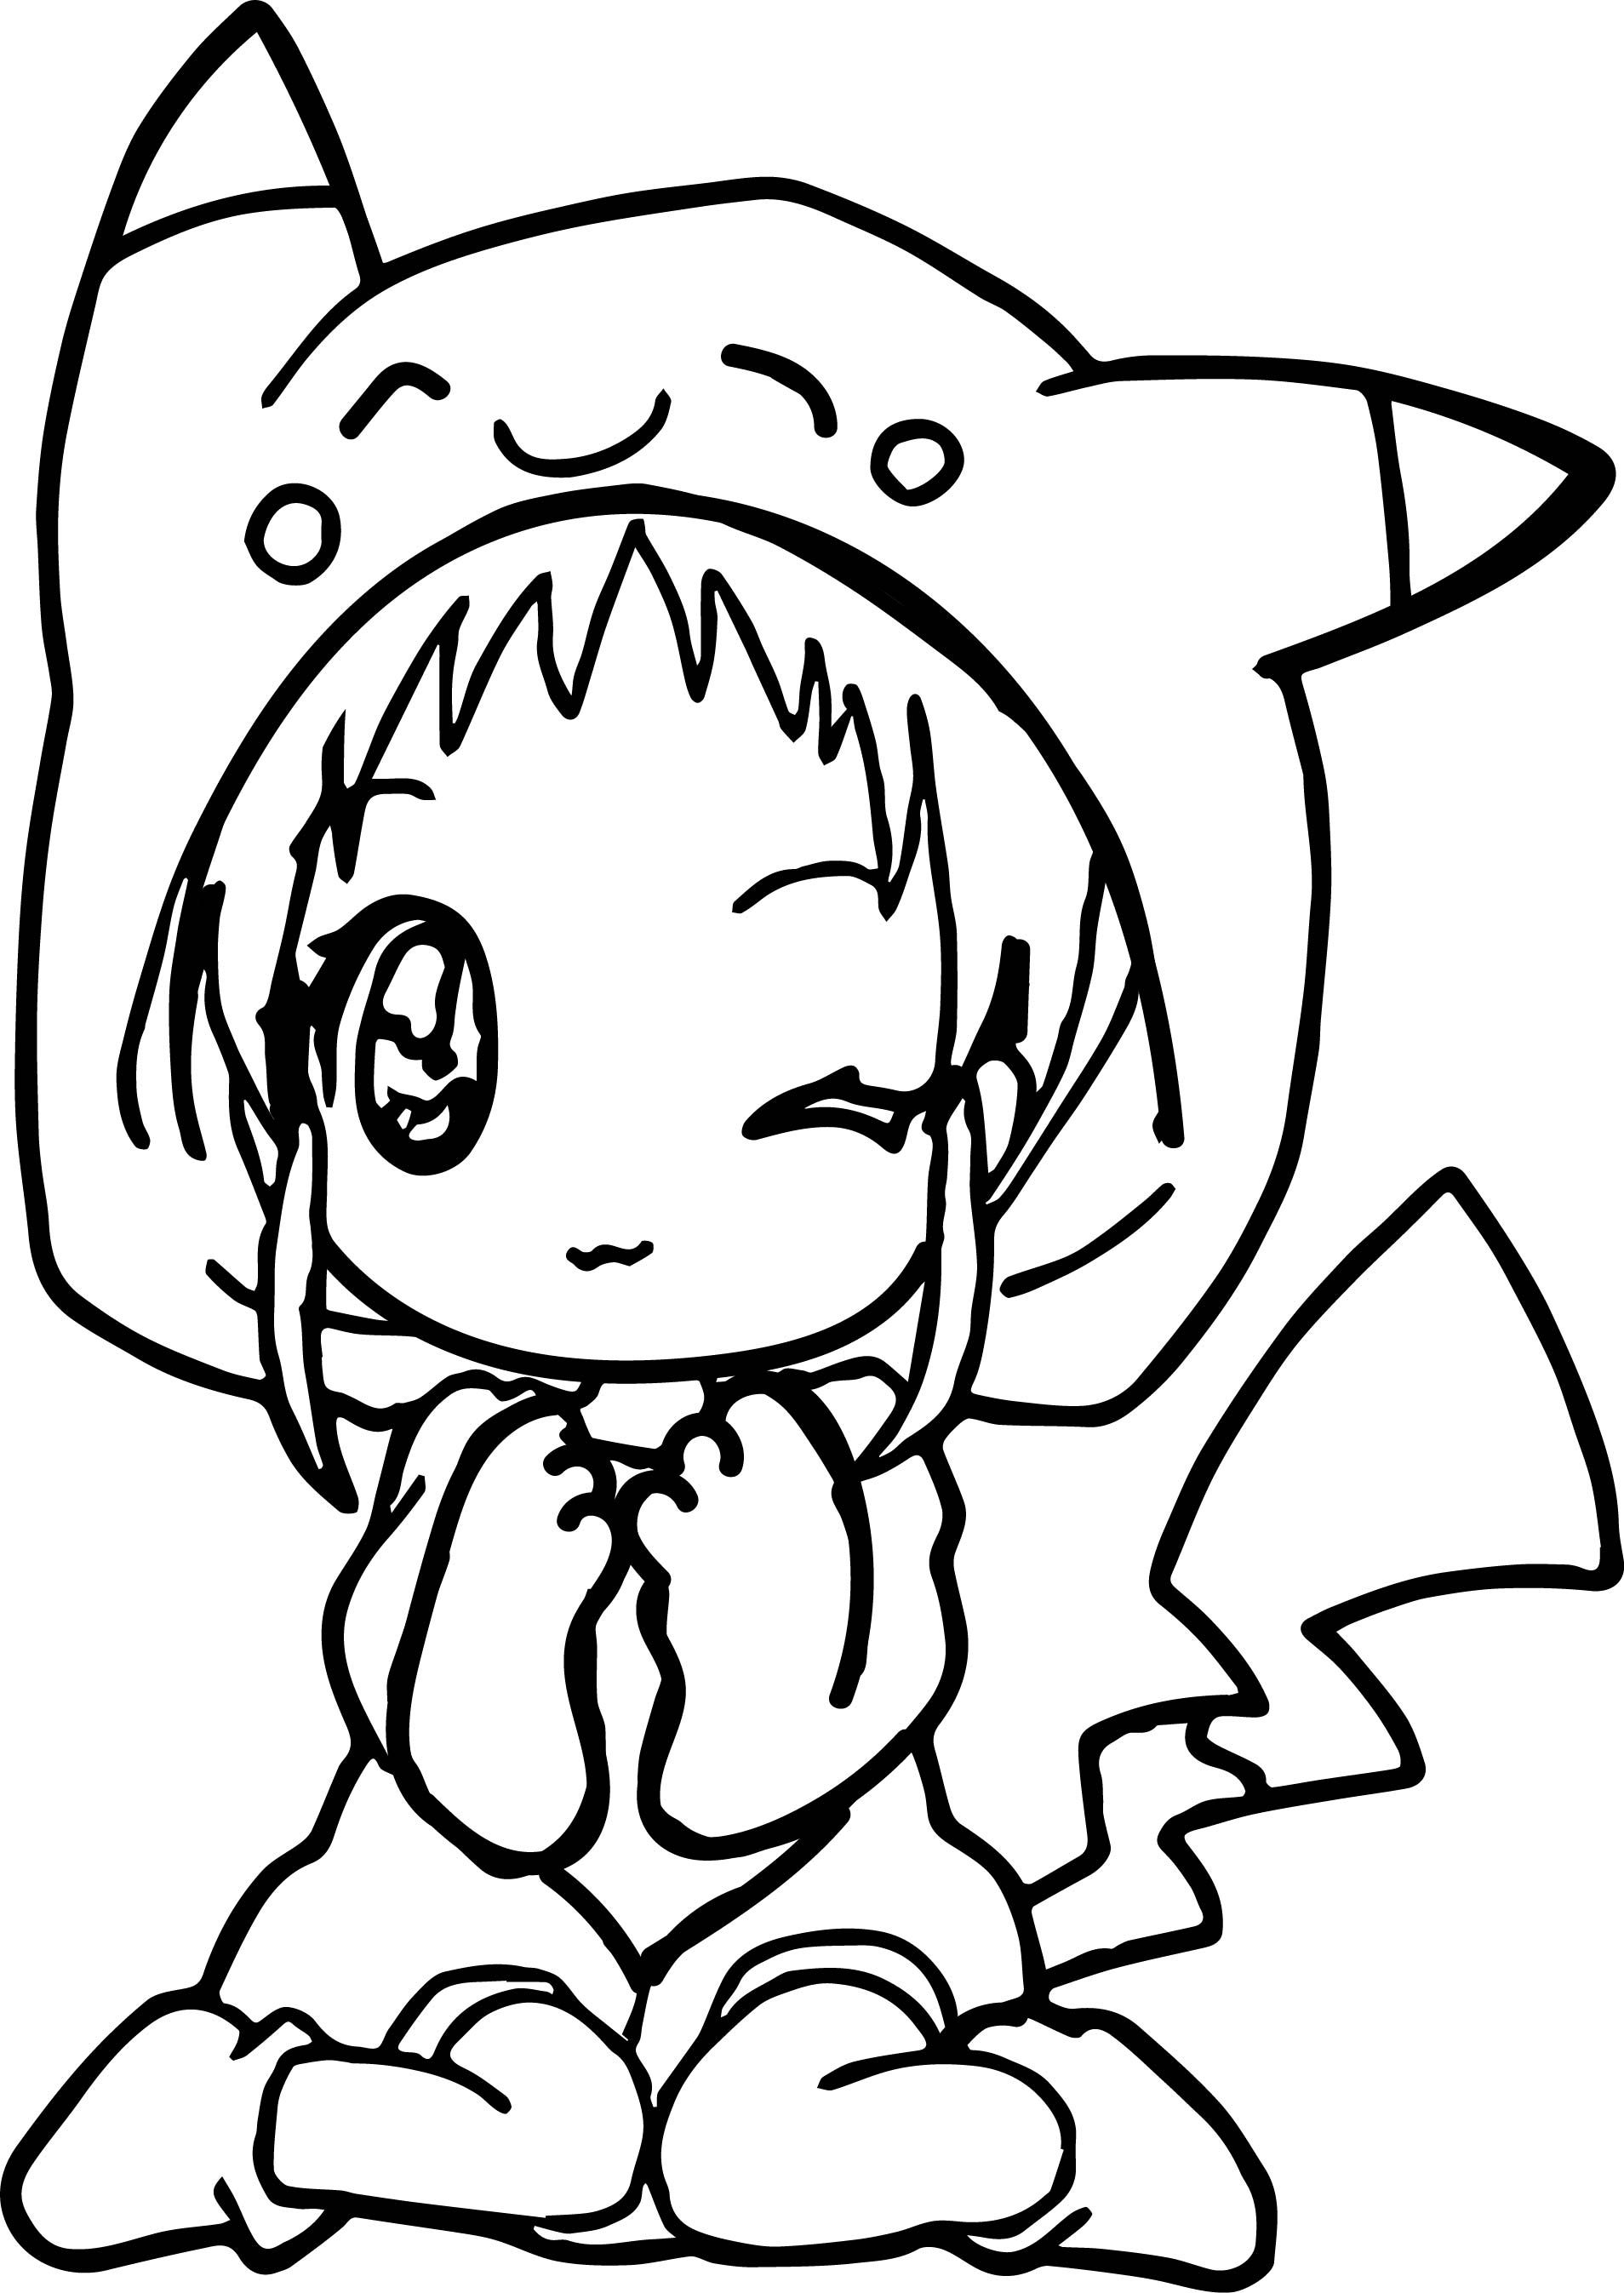 kawaii girls coloring pages yams lineart by yampuff on deviantart kawaii girls coloring pages